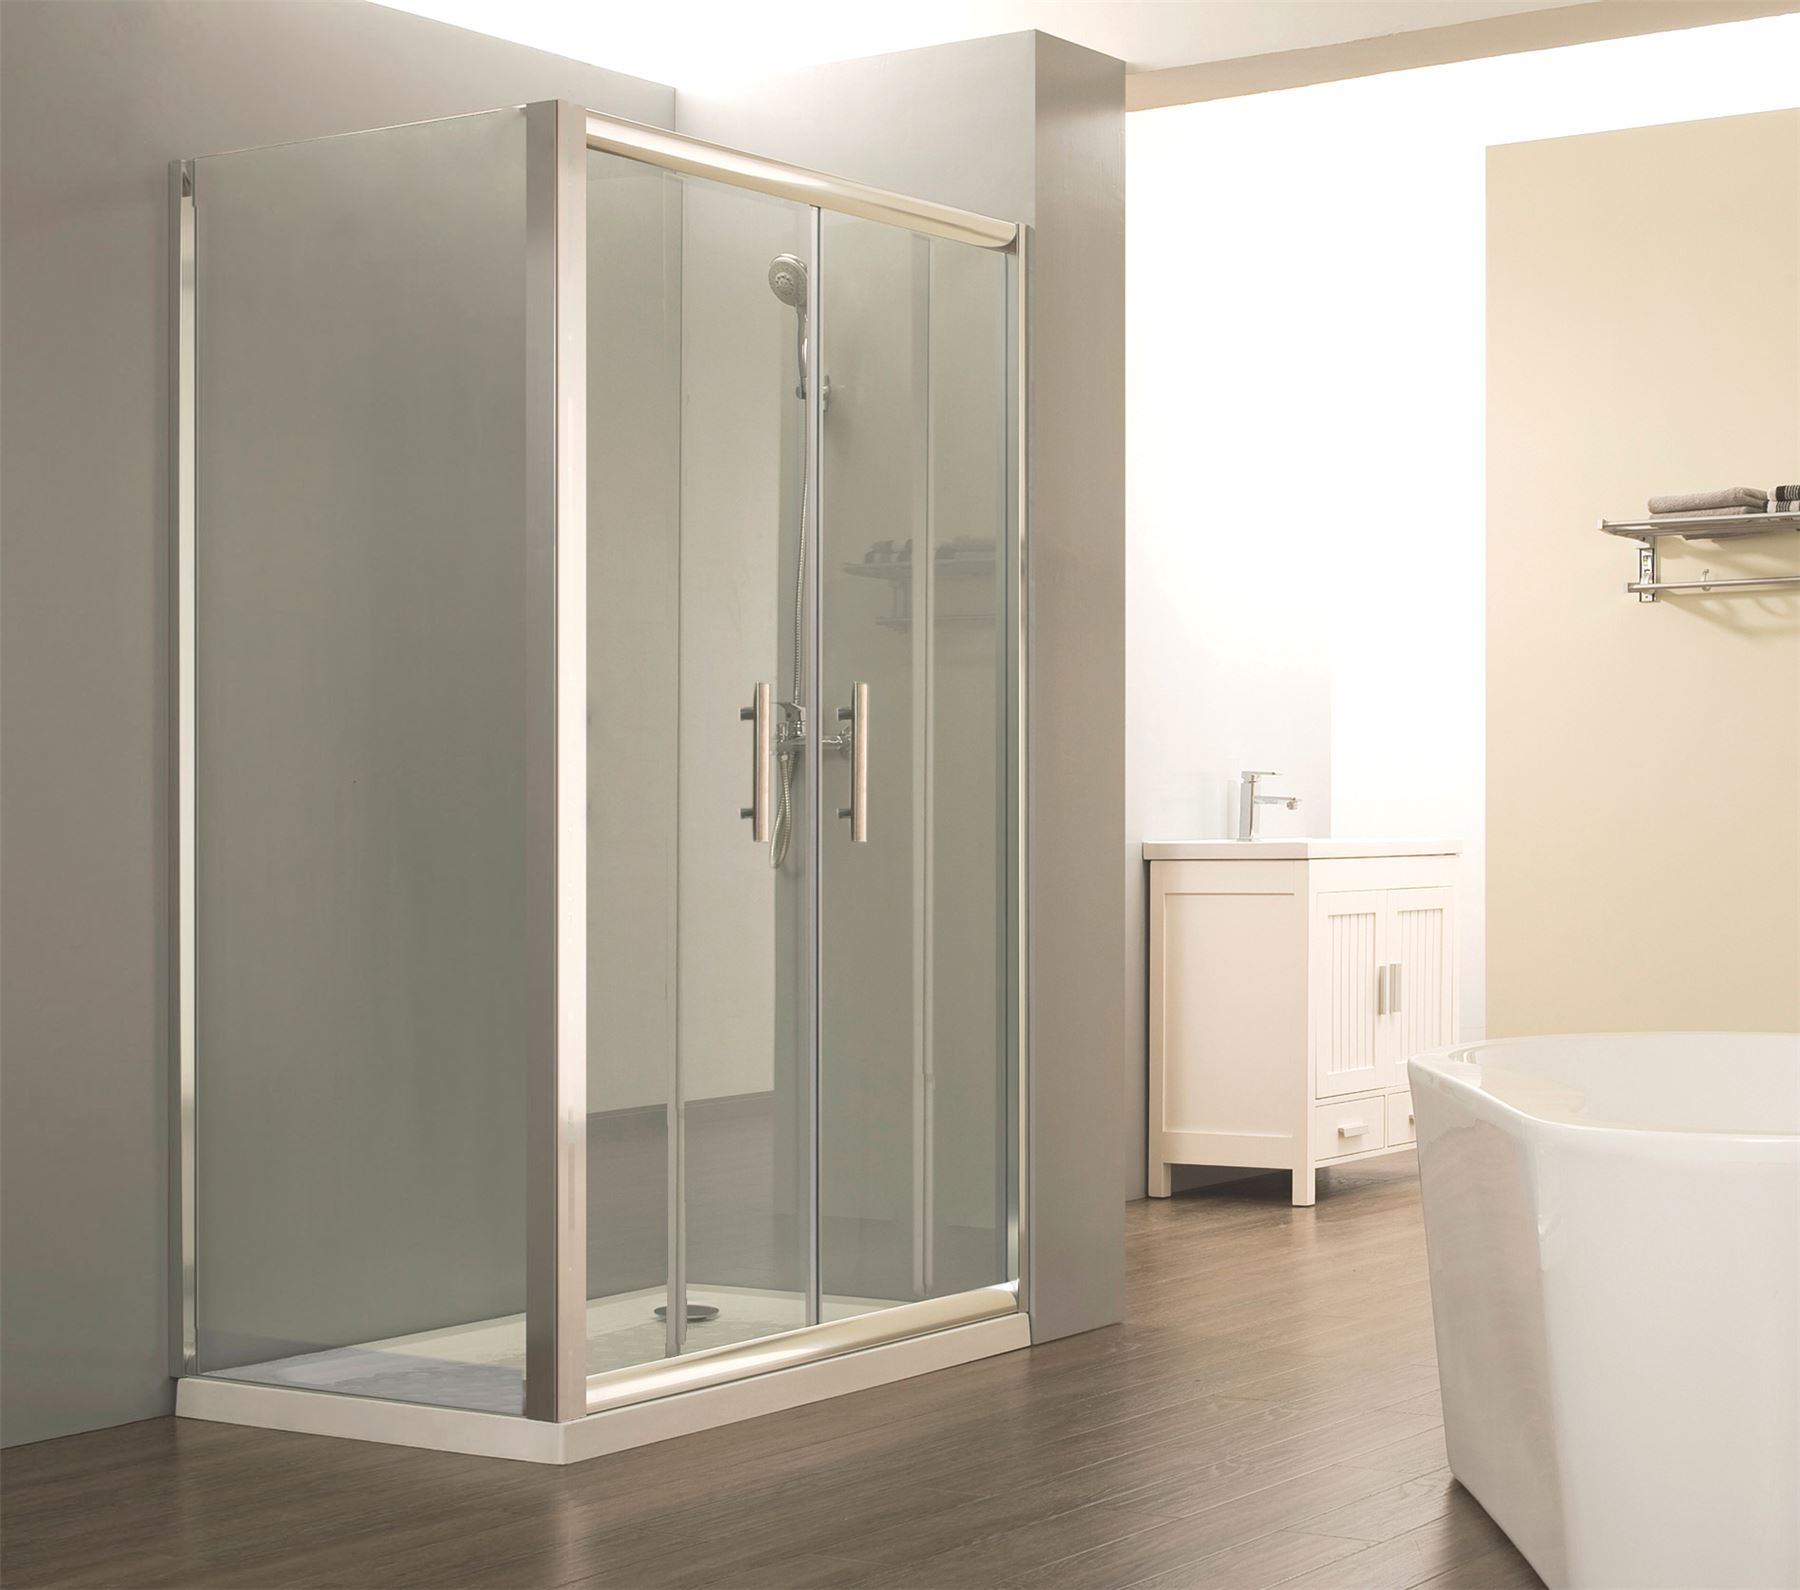 Easy walk in glass double sliding door corner shower enclosure cubicle with tray ebay - Walk in glass shower enclosures ...